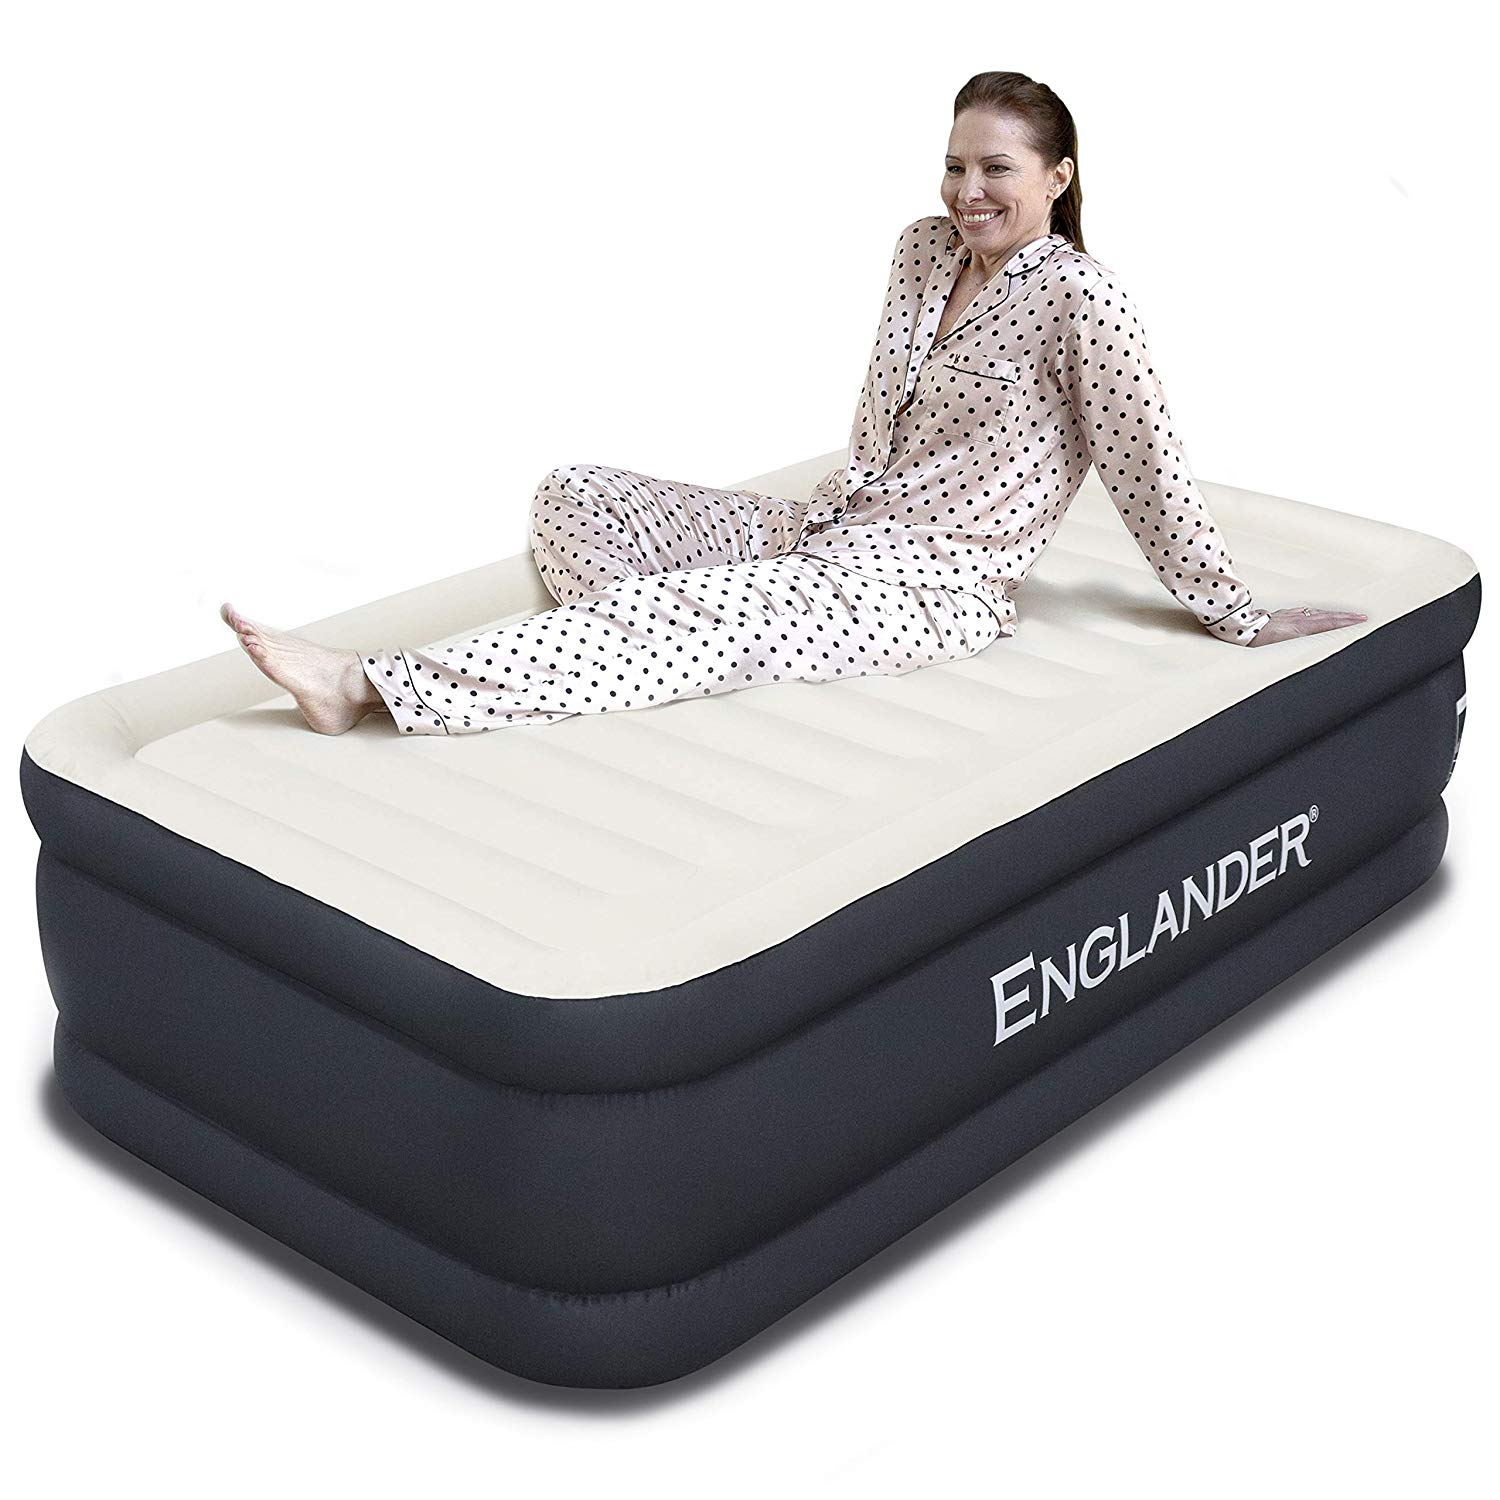 Englander First-Ever Microfiber AIR Mattress